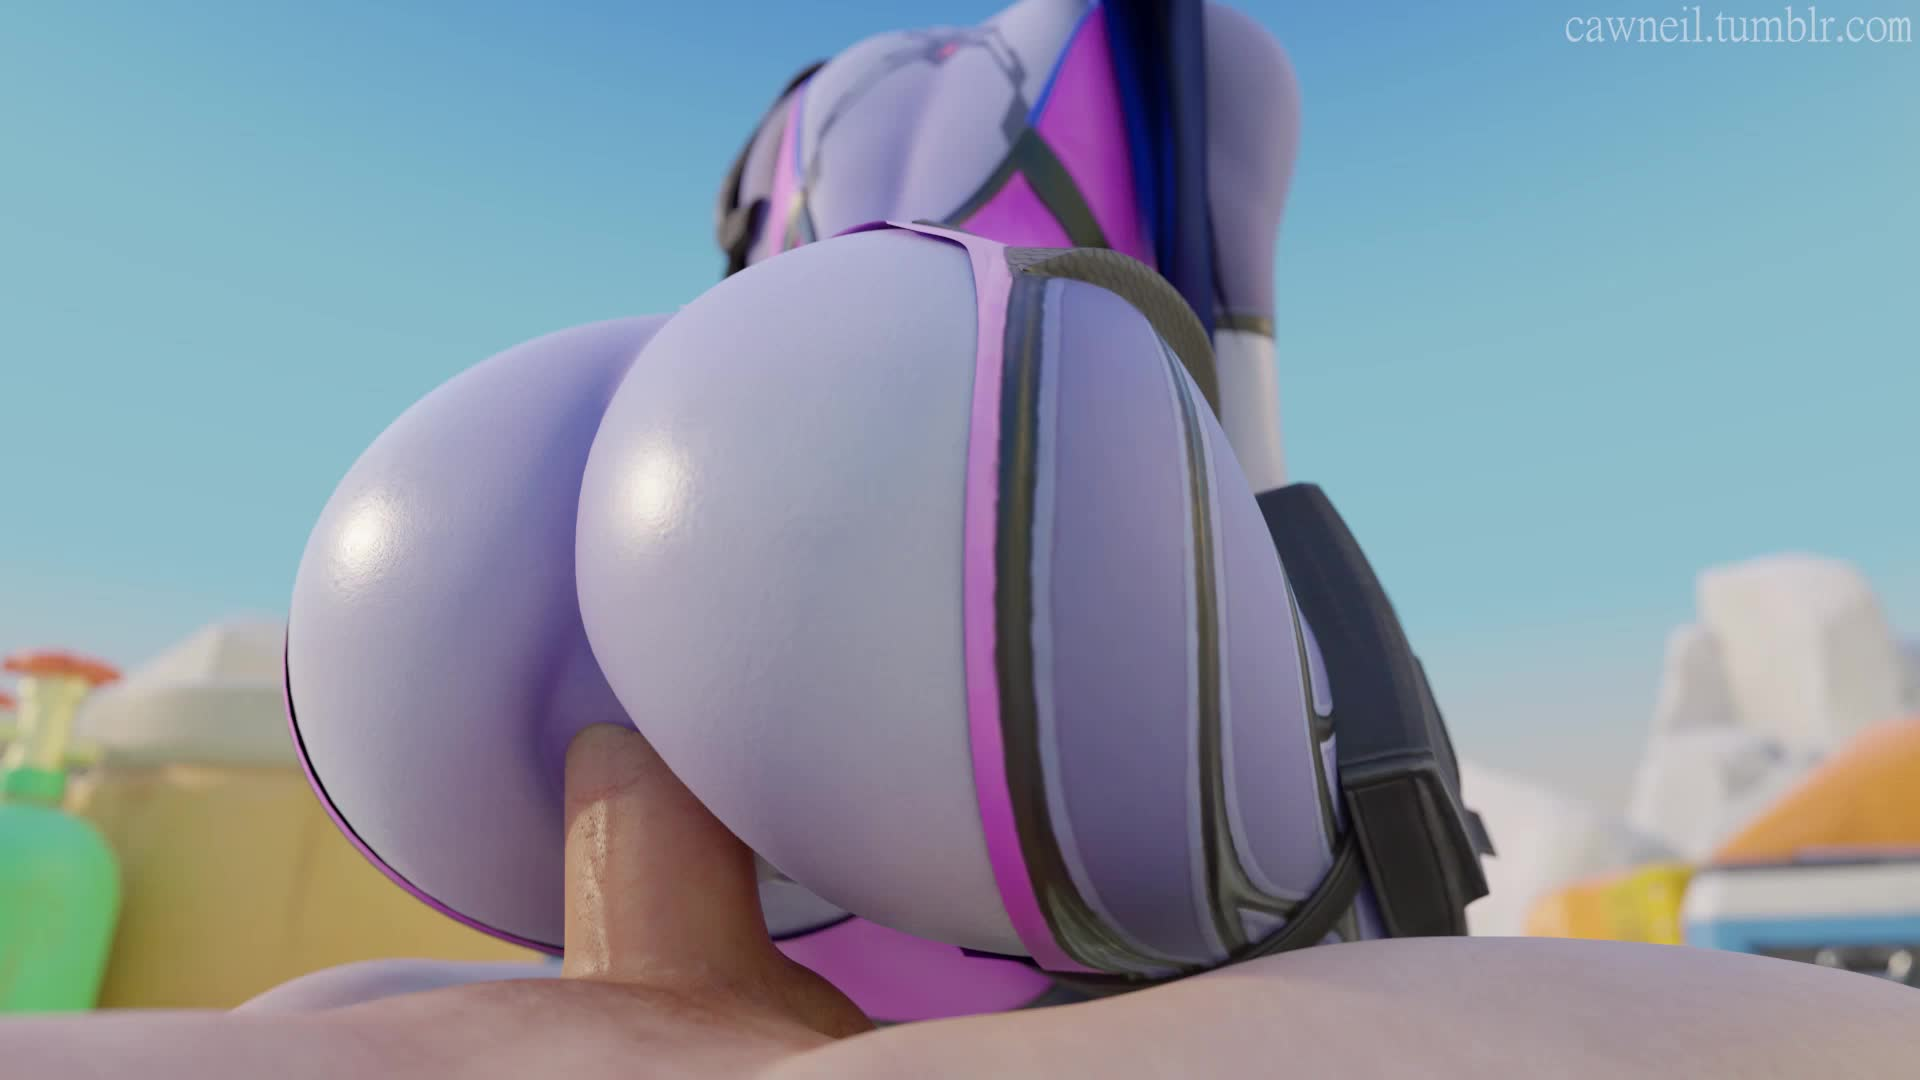 3D Animated Blender Cawneil Overwatch Sound Widowmaker // 1920x1080 // 1.6MB // webm